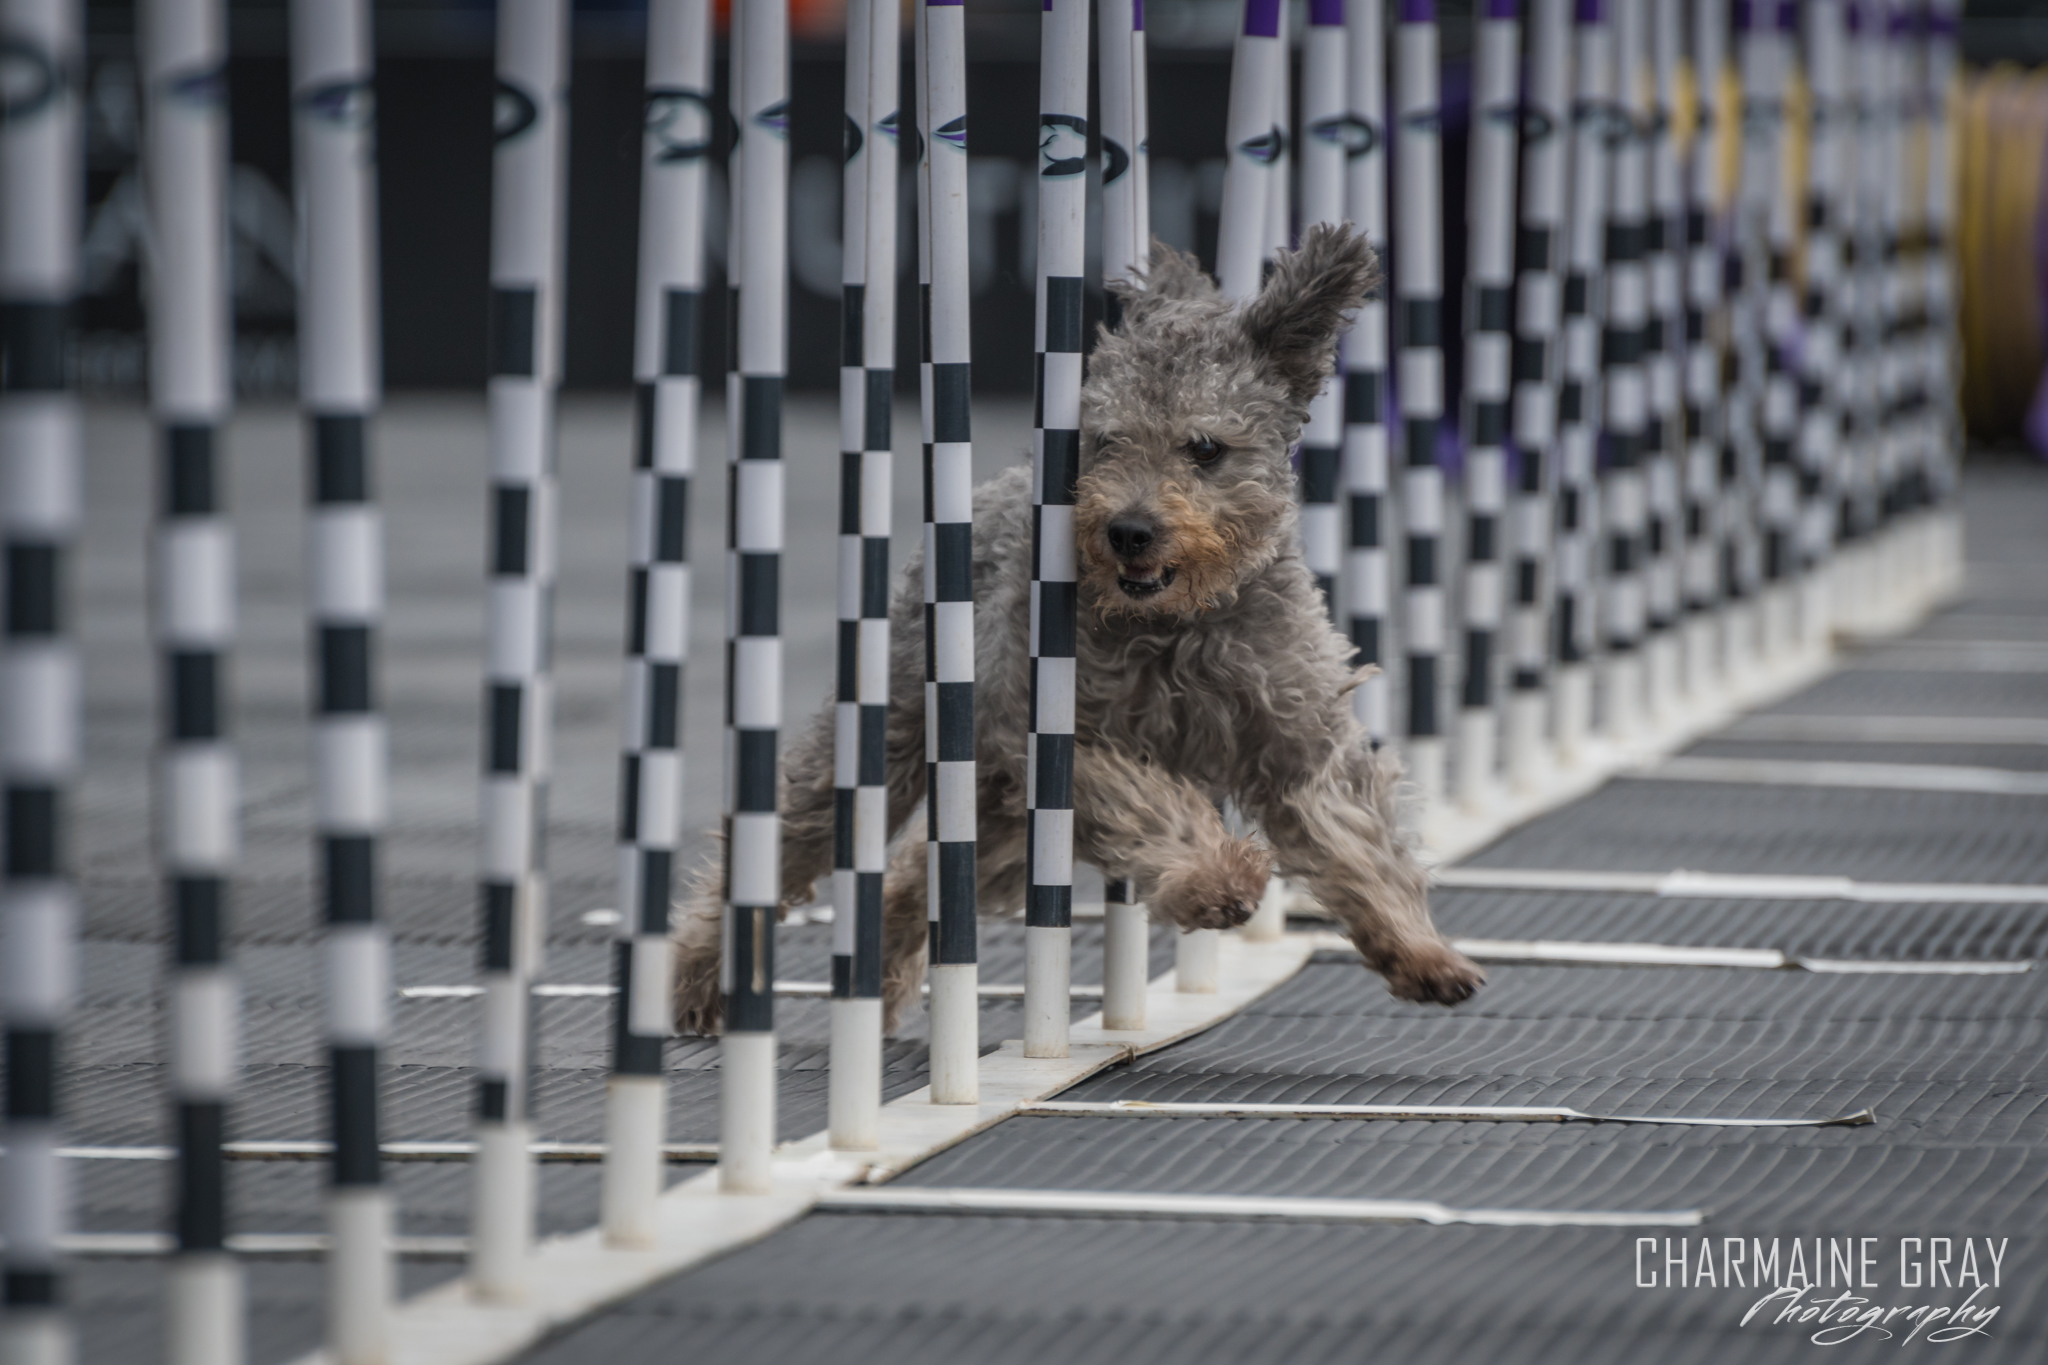 pet photographer, pet photography, pet portrait, pet, animal, charmaine gray photography, charmaine gray pet photography, san diego,dog,canine,california,dog agility